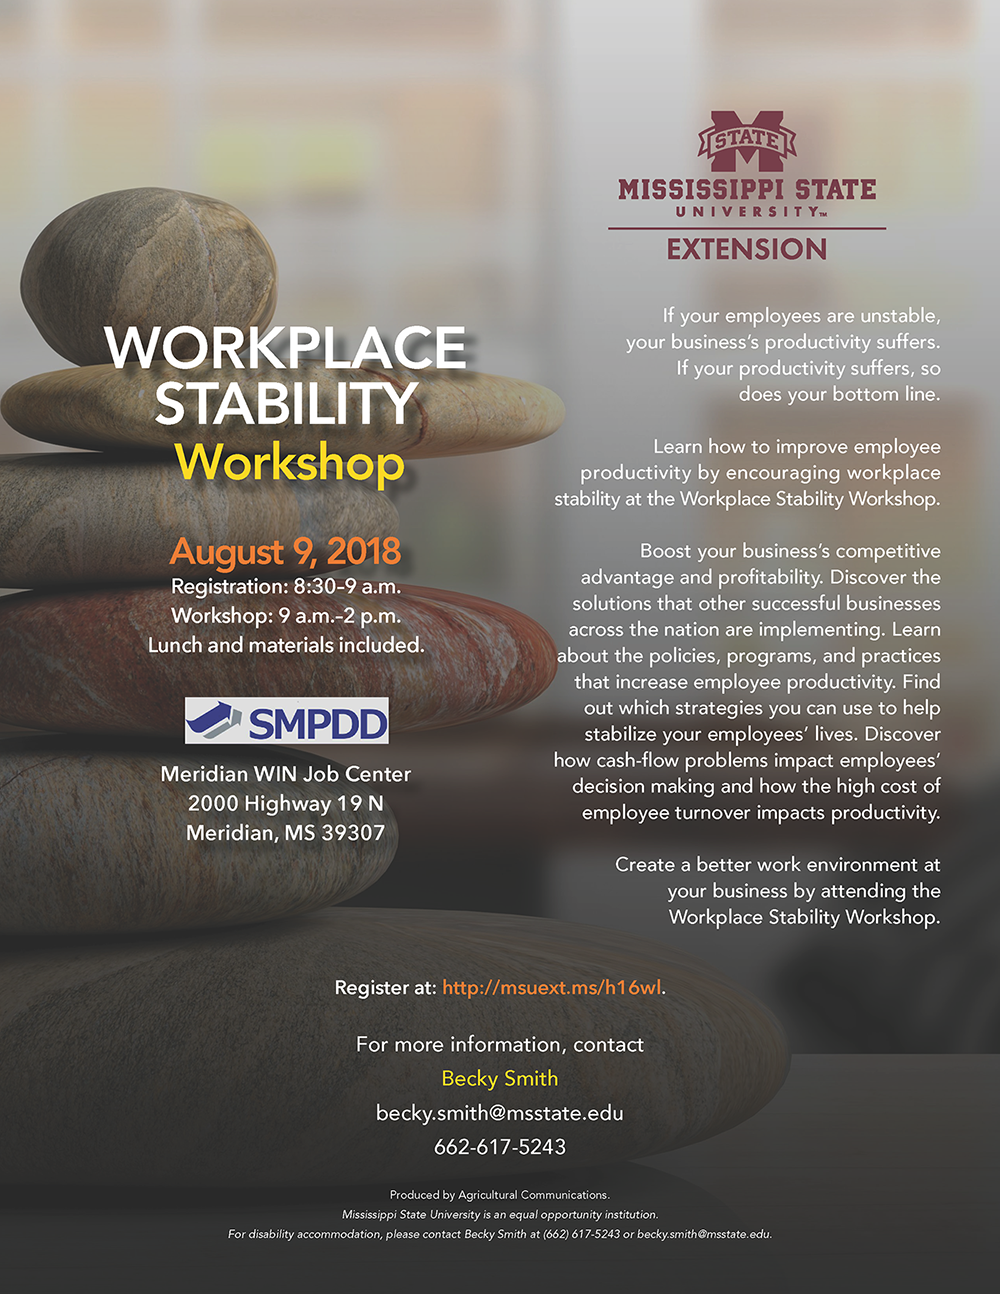 Workplace Stability Workshop flyer - August 9, 2018